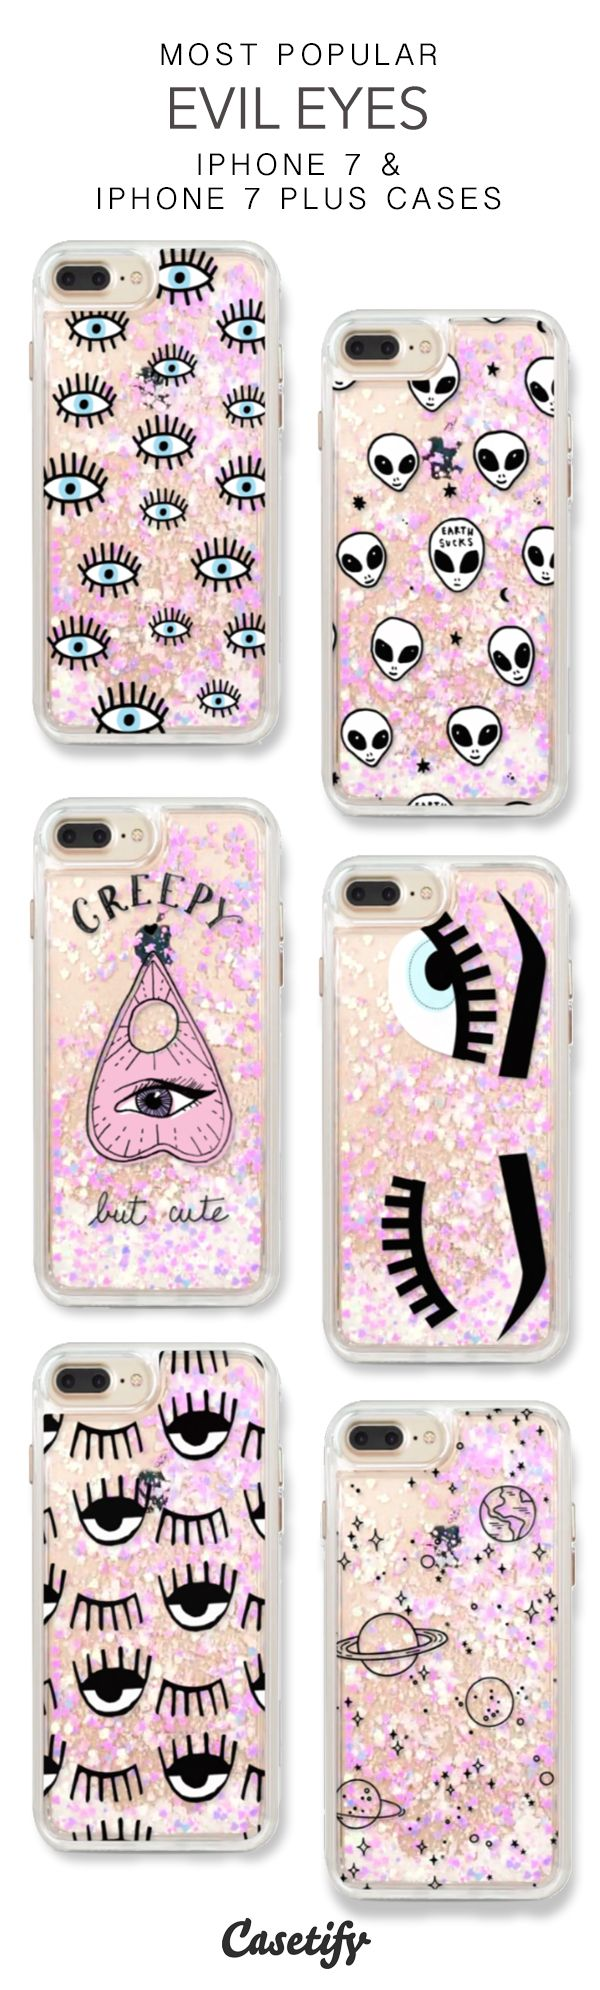 Most Popular Evil Eye iPhone 7 Cases & iPhone 7 Plus Cases. More glitter iPhone case here > https://www.casetify.com/en_US/collections/iphone-7-glitter-cases#/